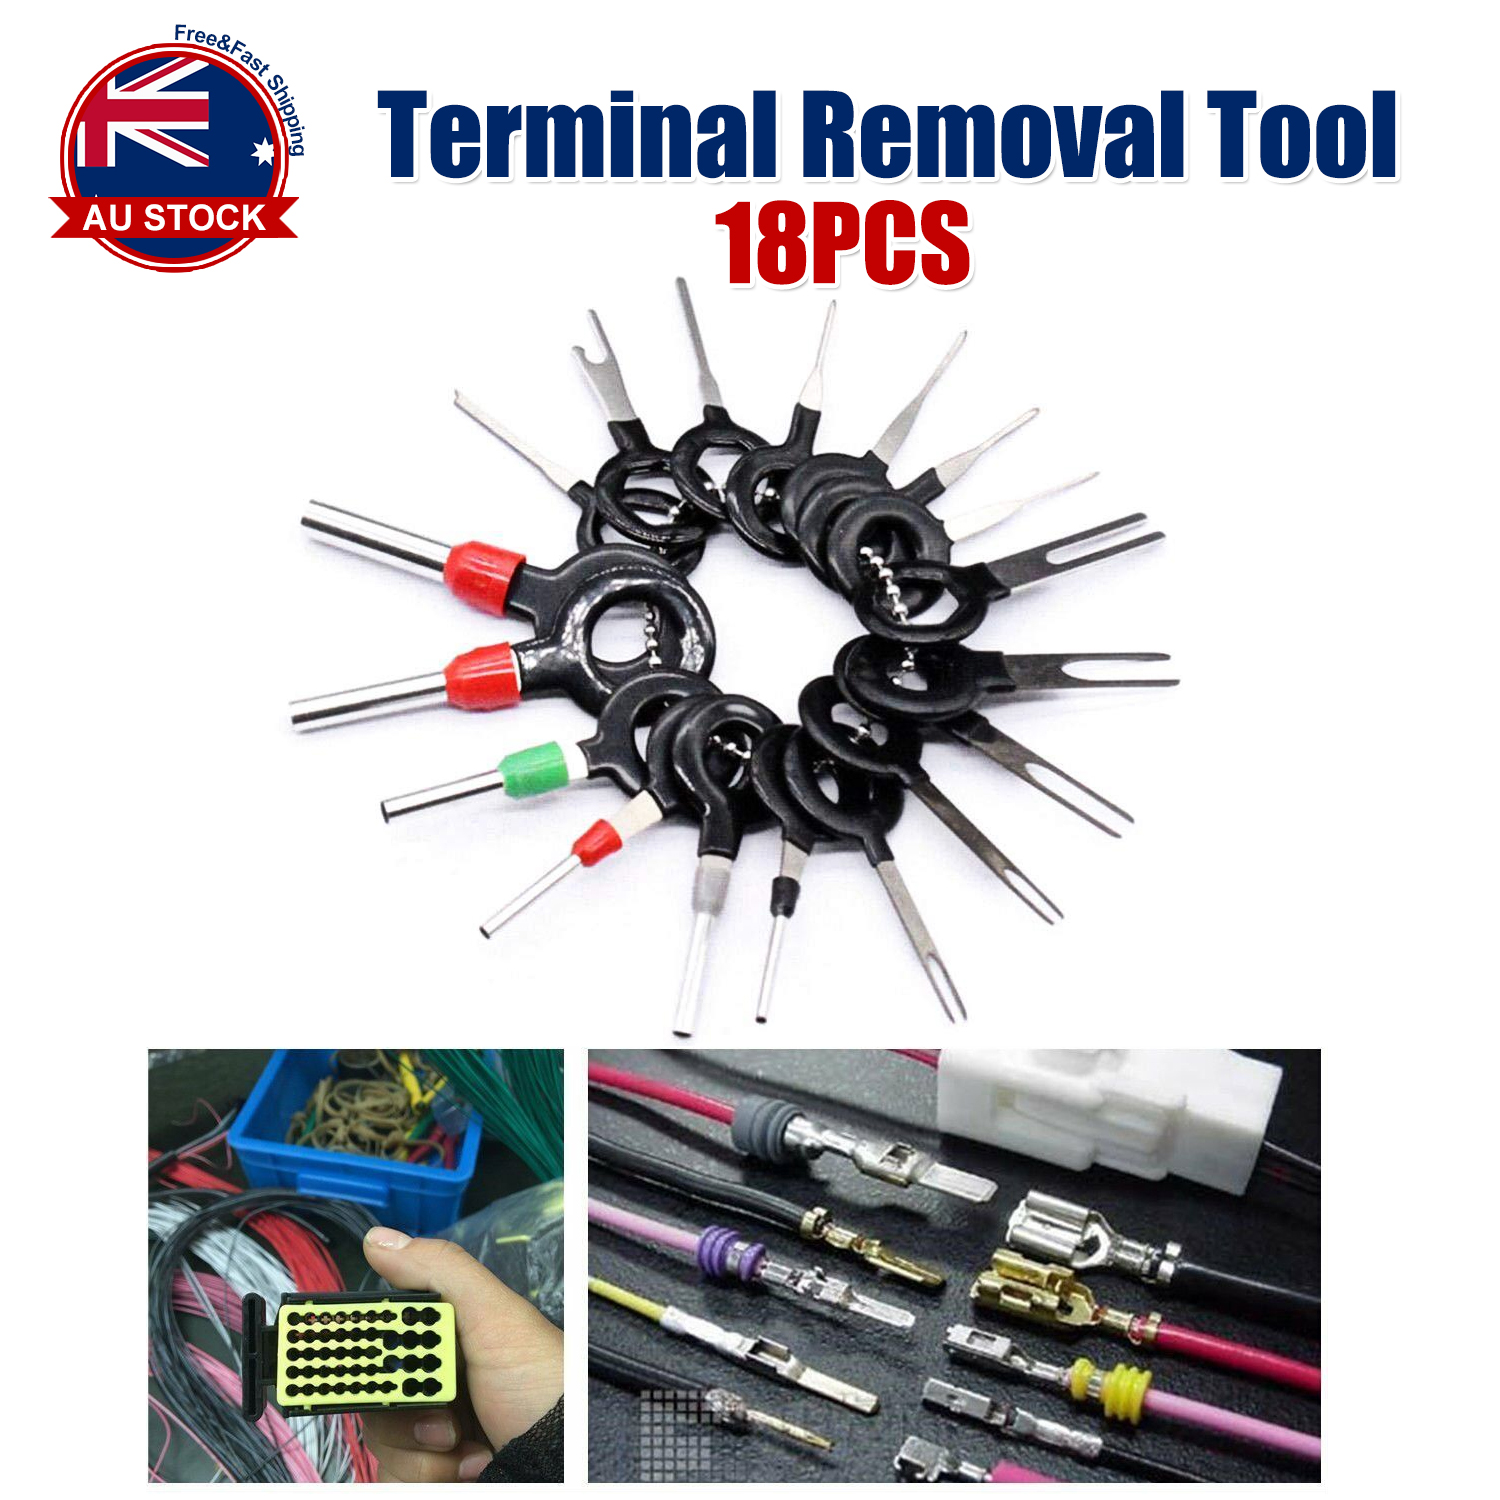 18x Connector Pin Extractor Terminal Removal Tool Car Electrical Wiring Crimp